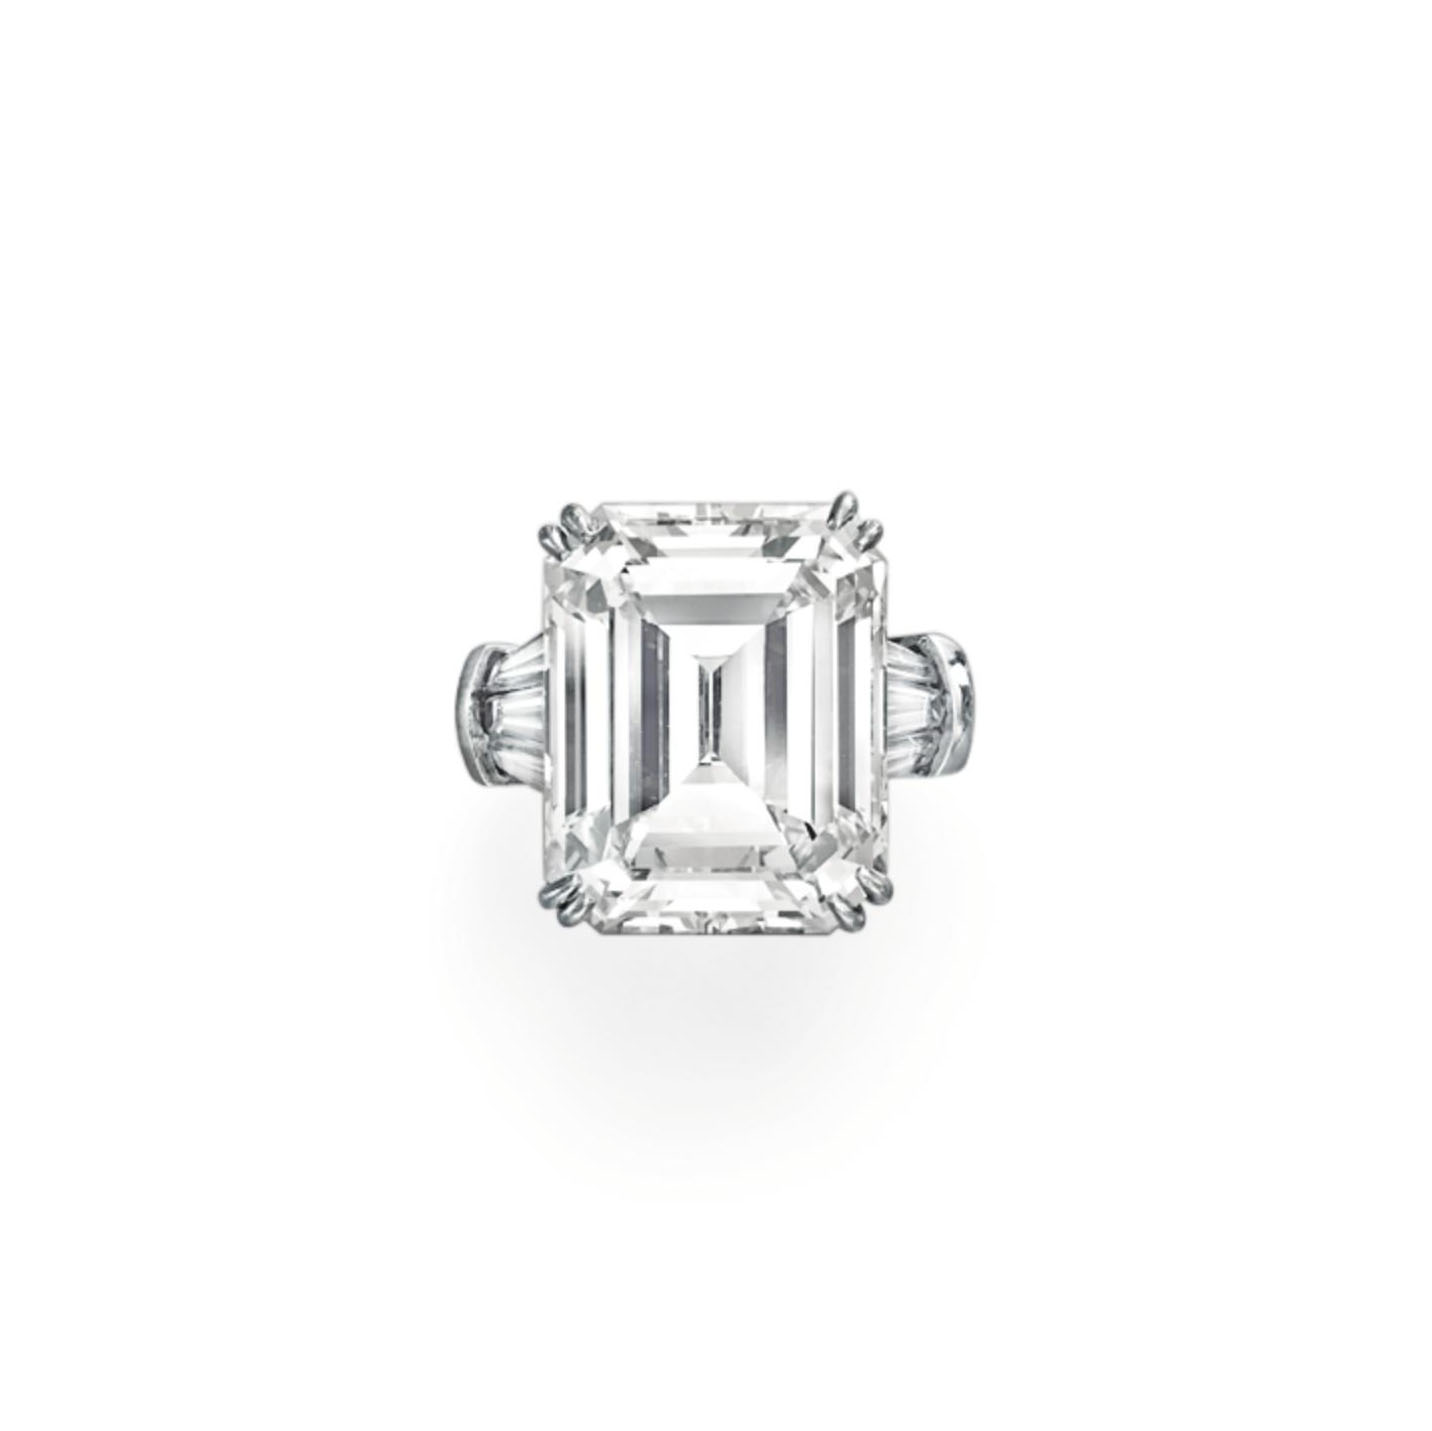 AN IMPORTANT DIAMOND RING, MOUNTED BY HARRY WINSTON